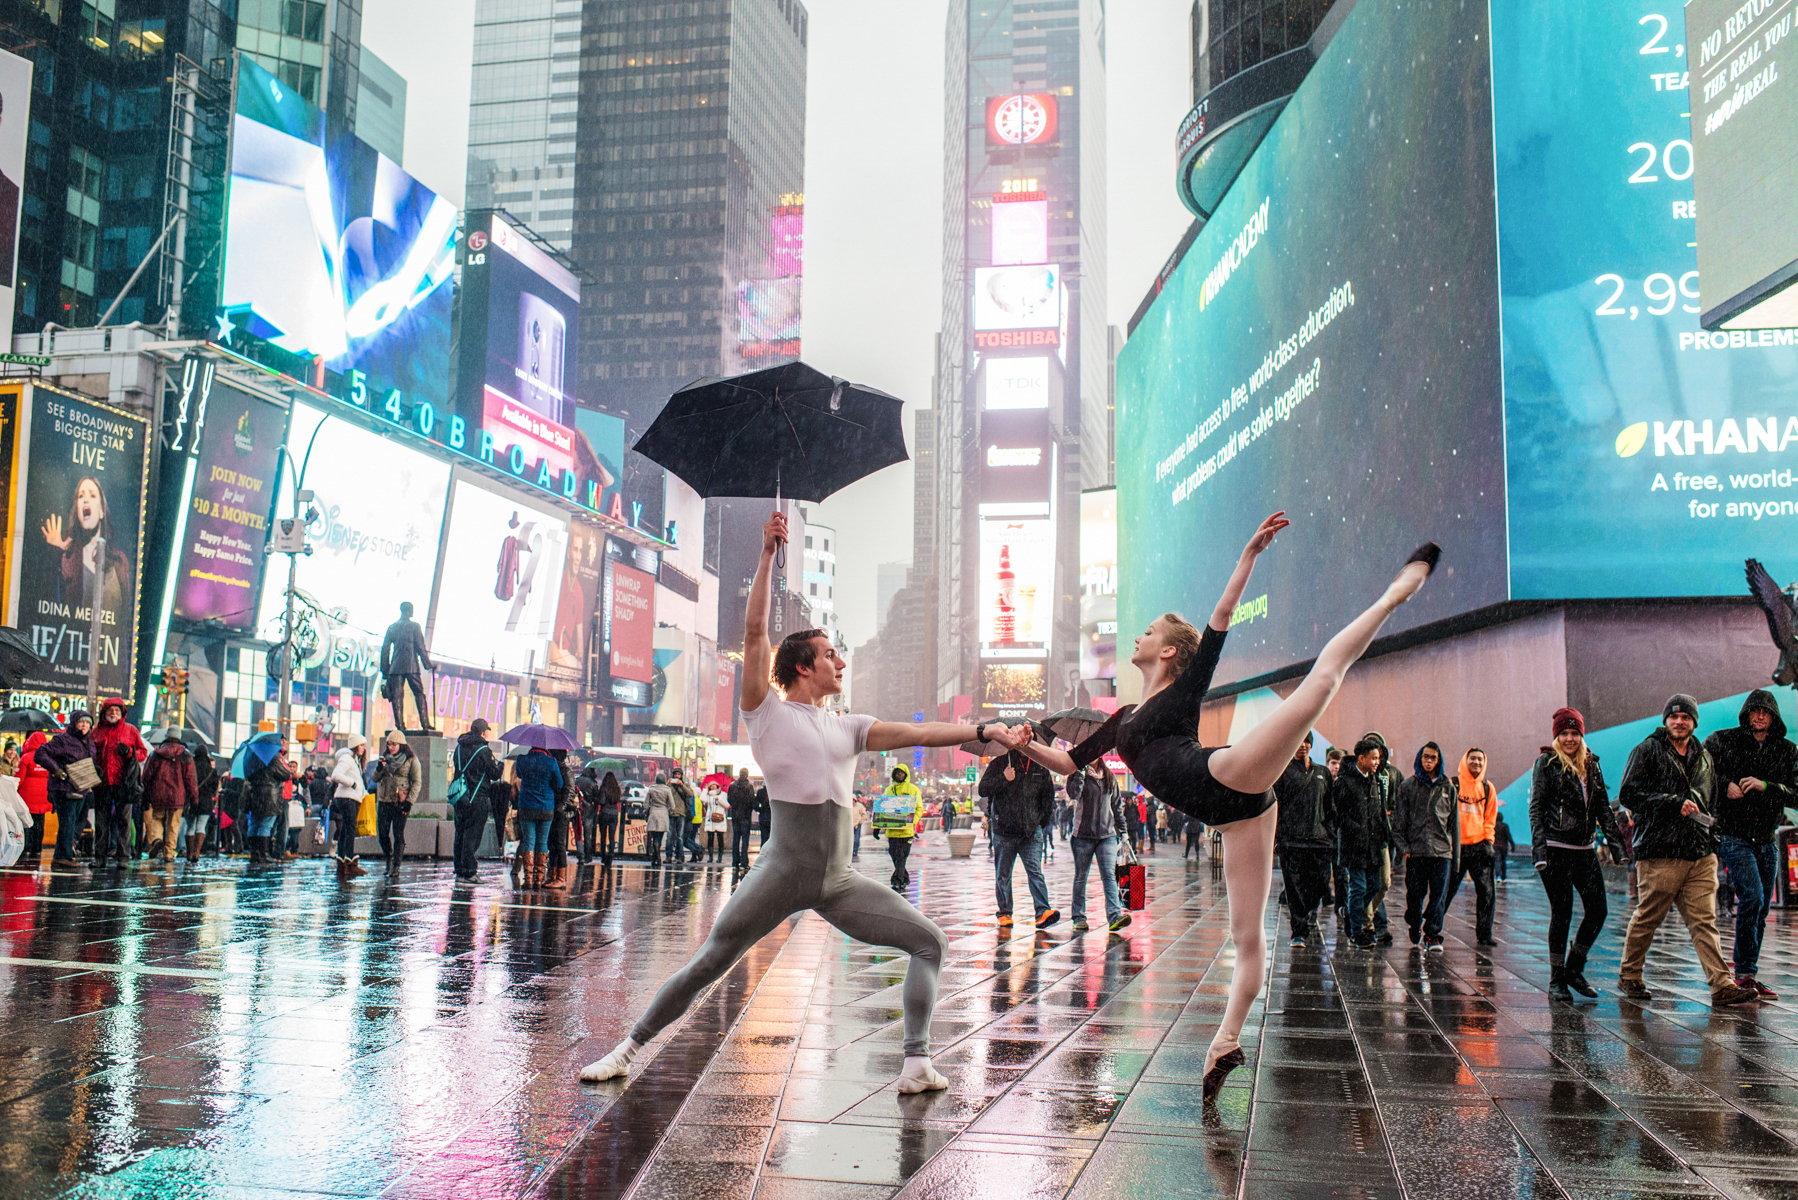 Ballet Dancers Dancing in the Rain in Time Square NYC